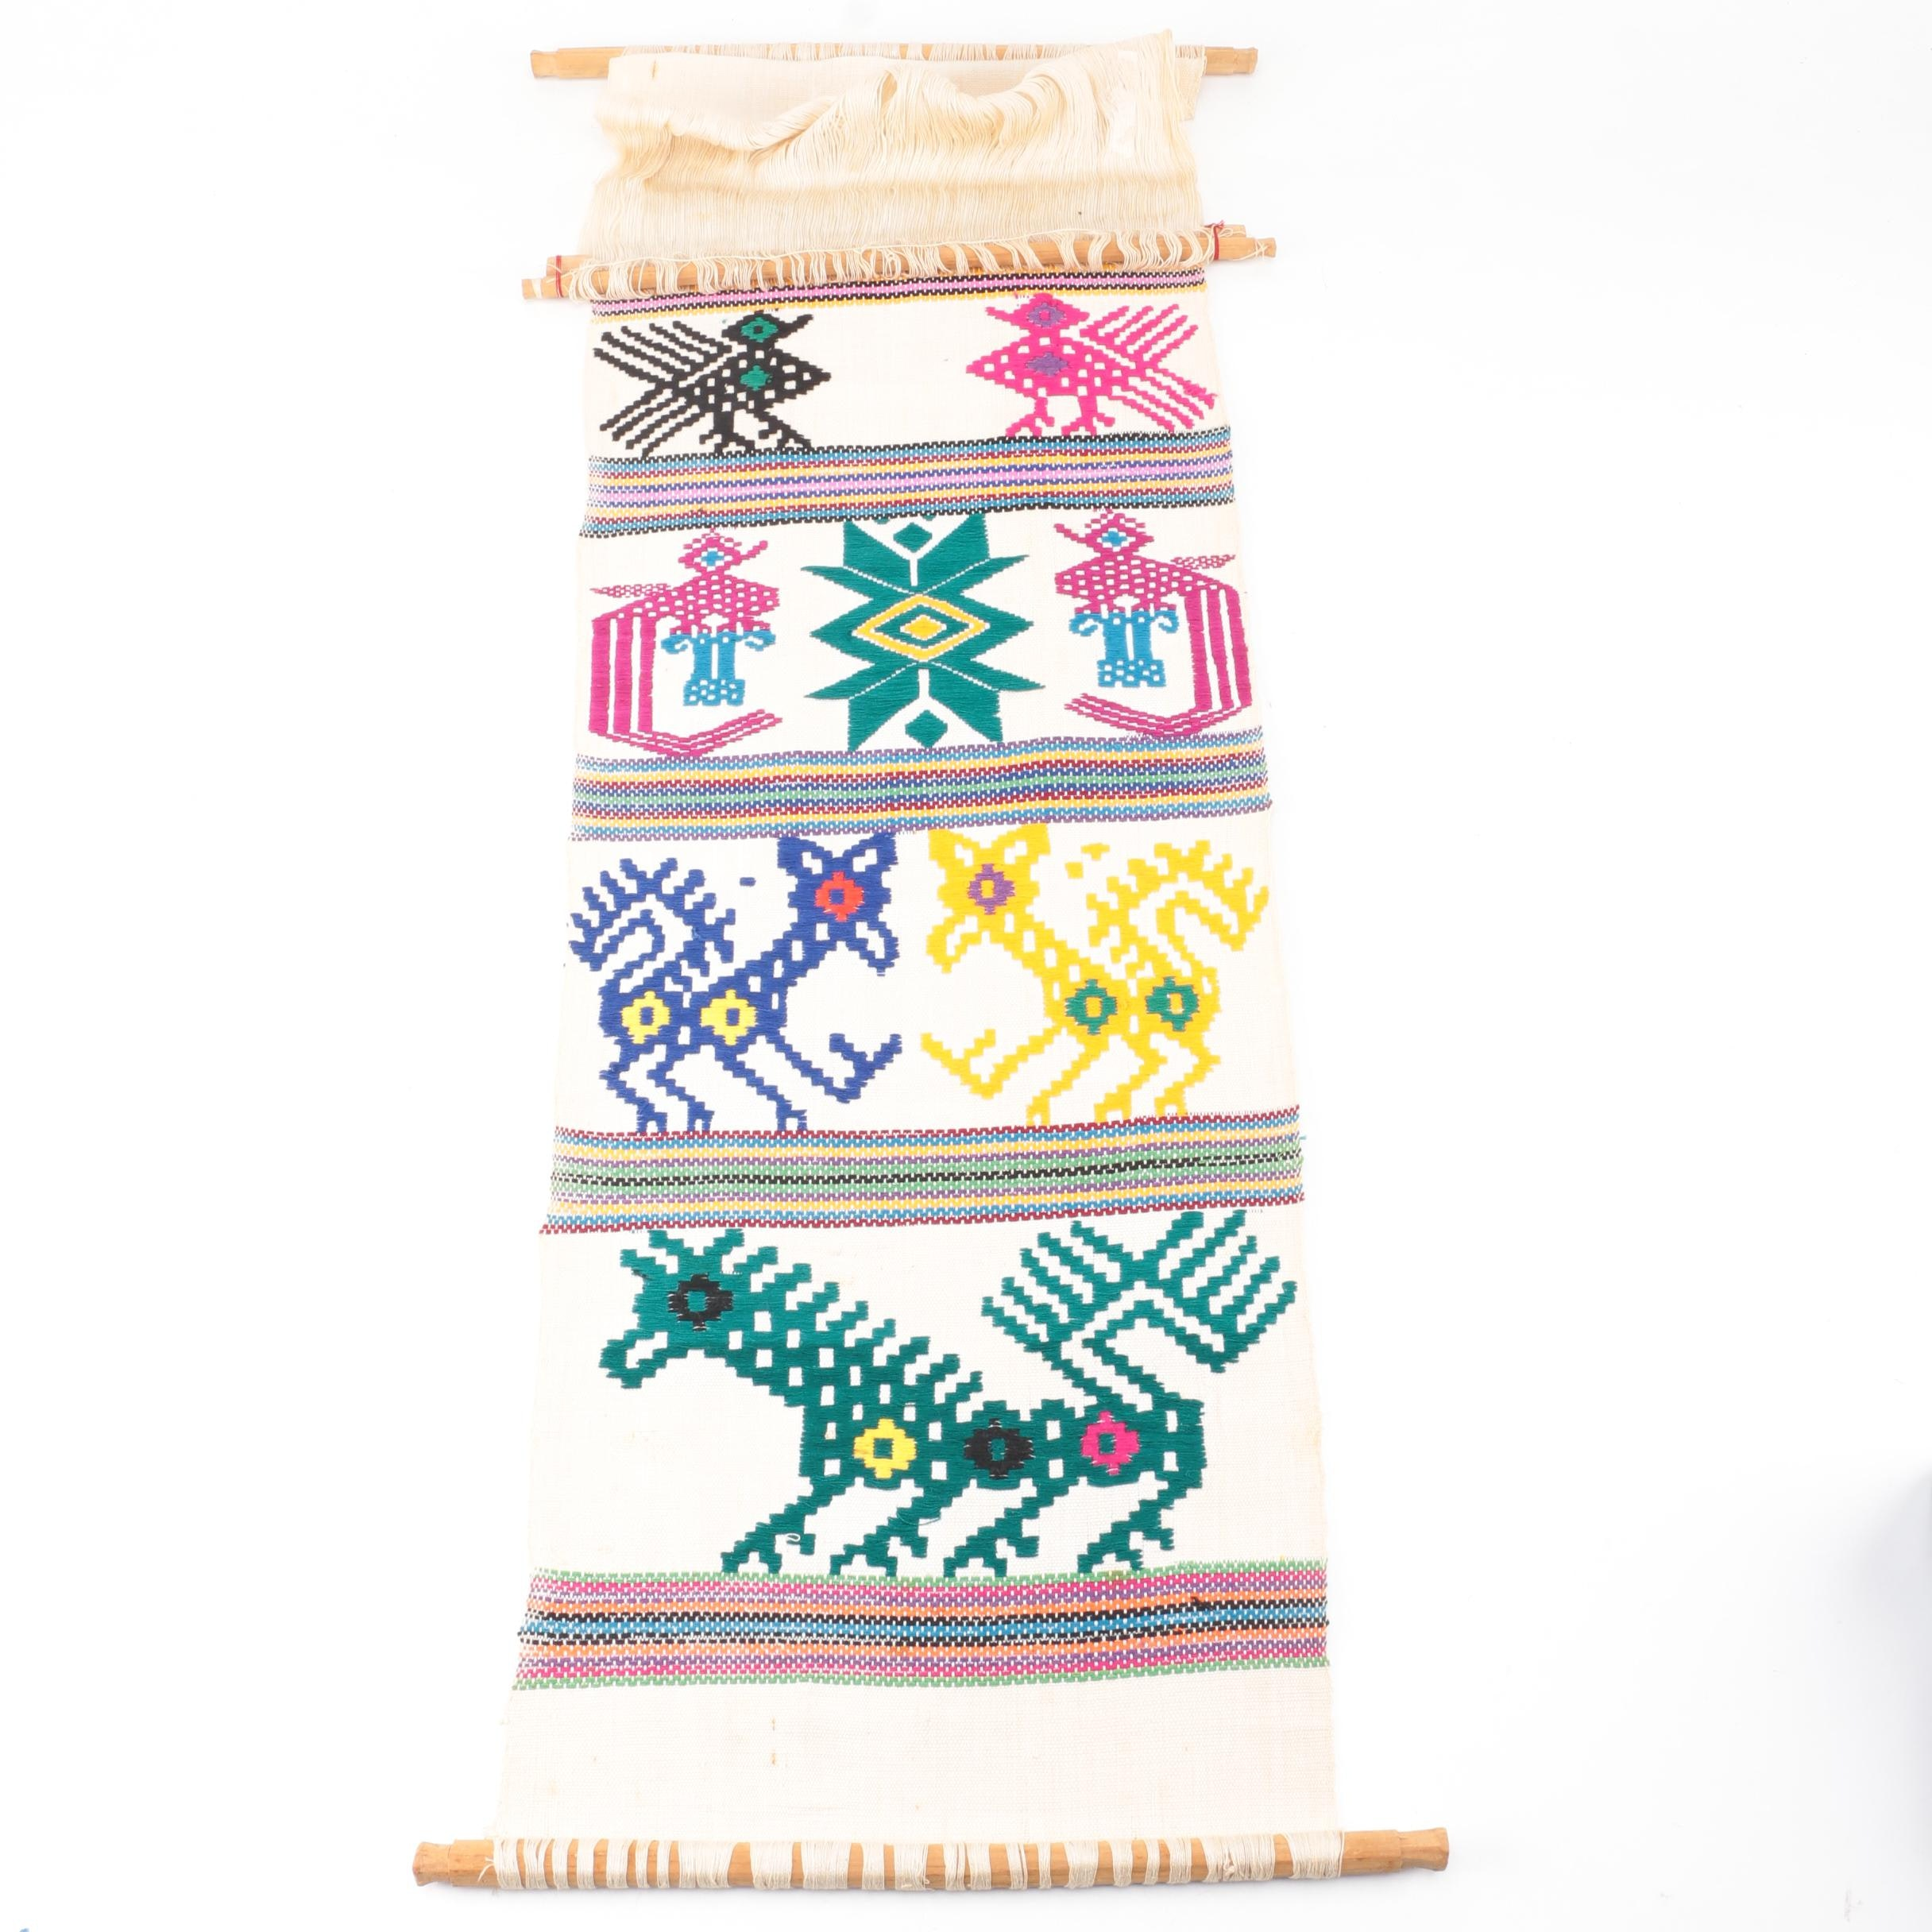 Handwoven Central American Textile on a Backstrap Loom